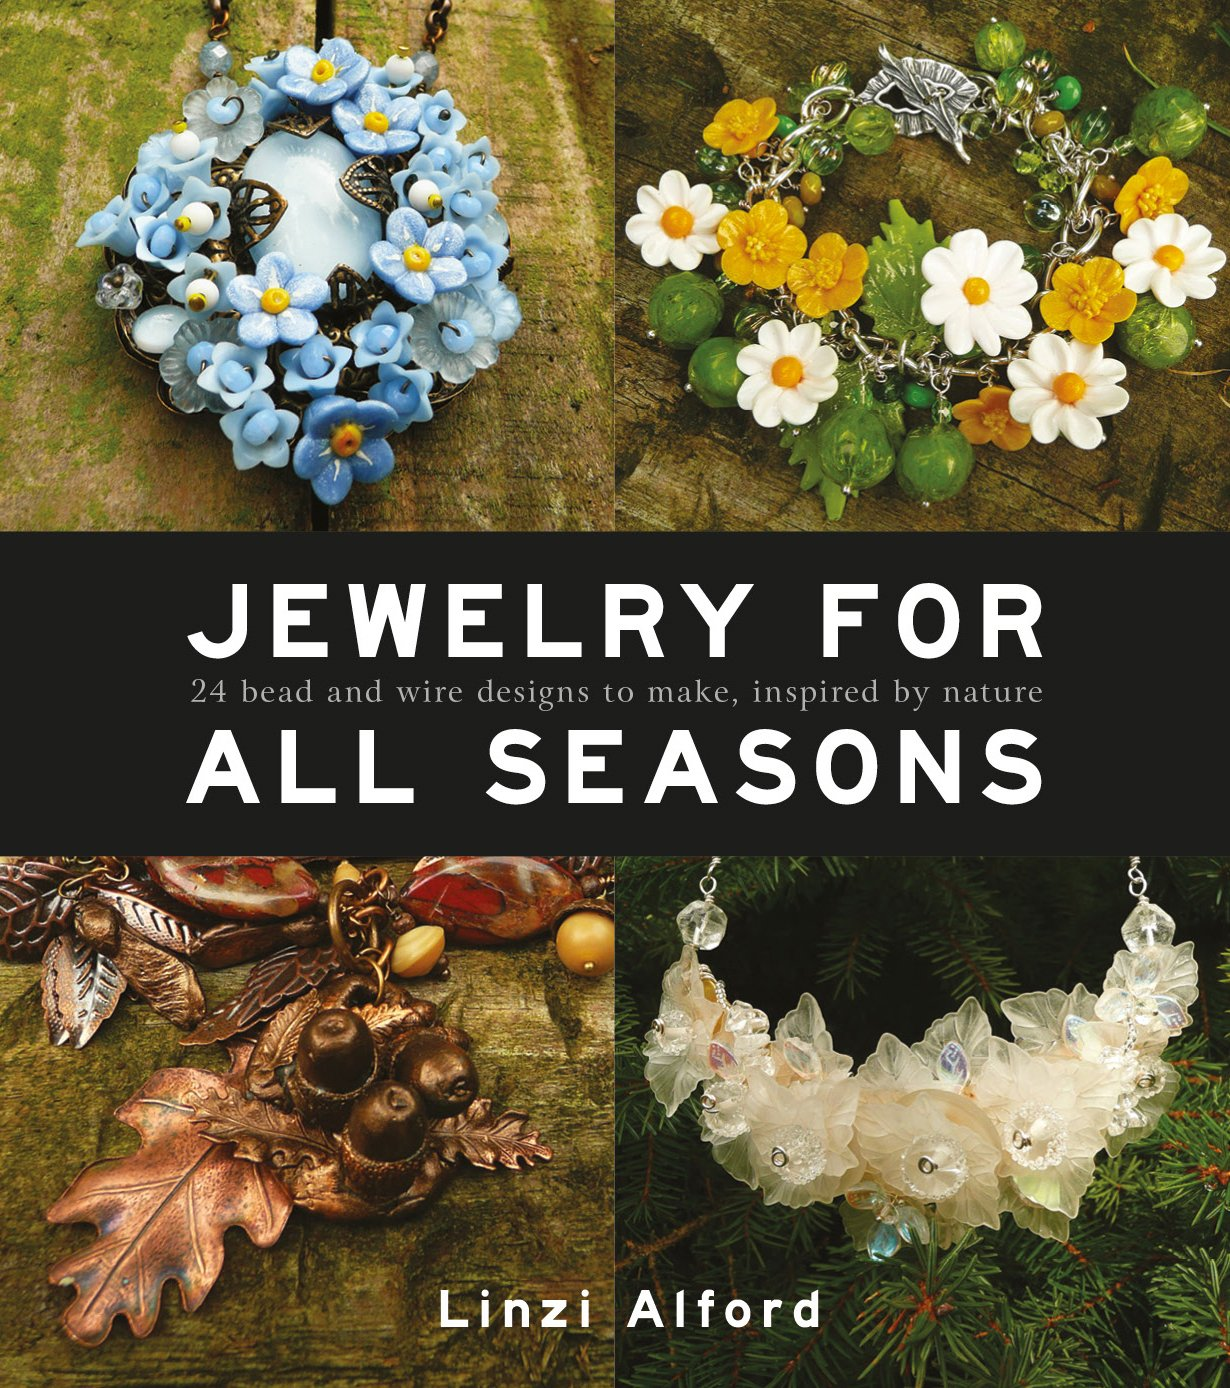 Jewelry for All Seasons: 24 Bead and Wire Designs Inspired by Nature